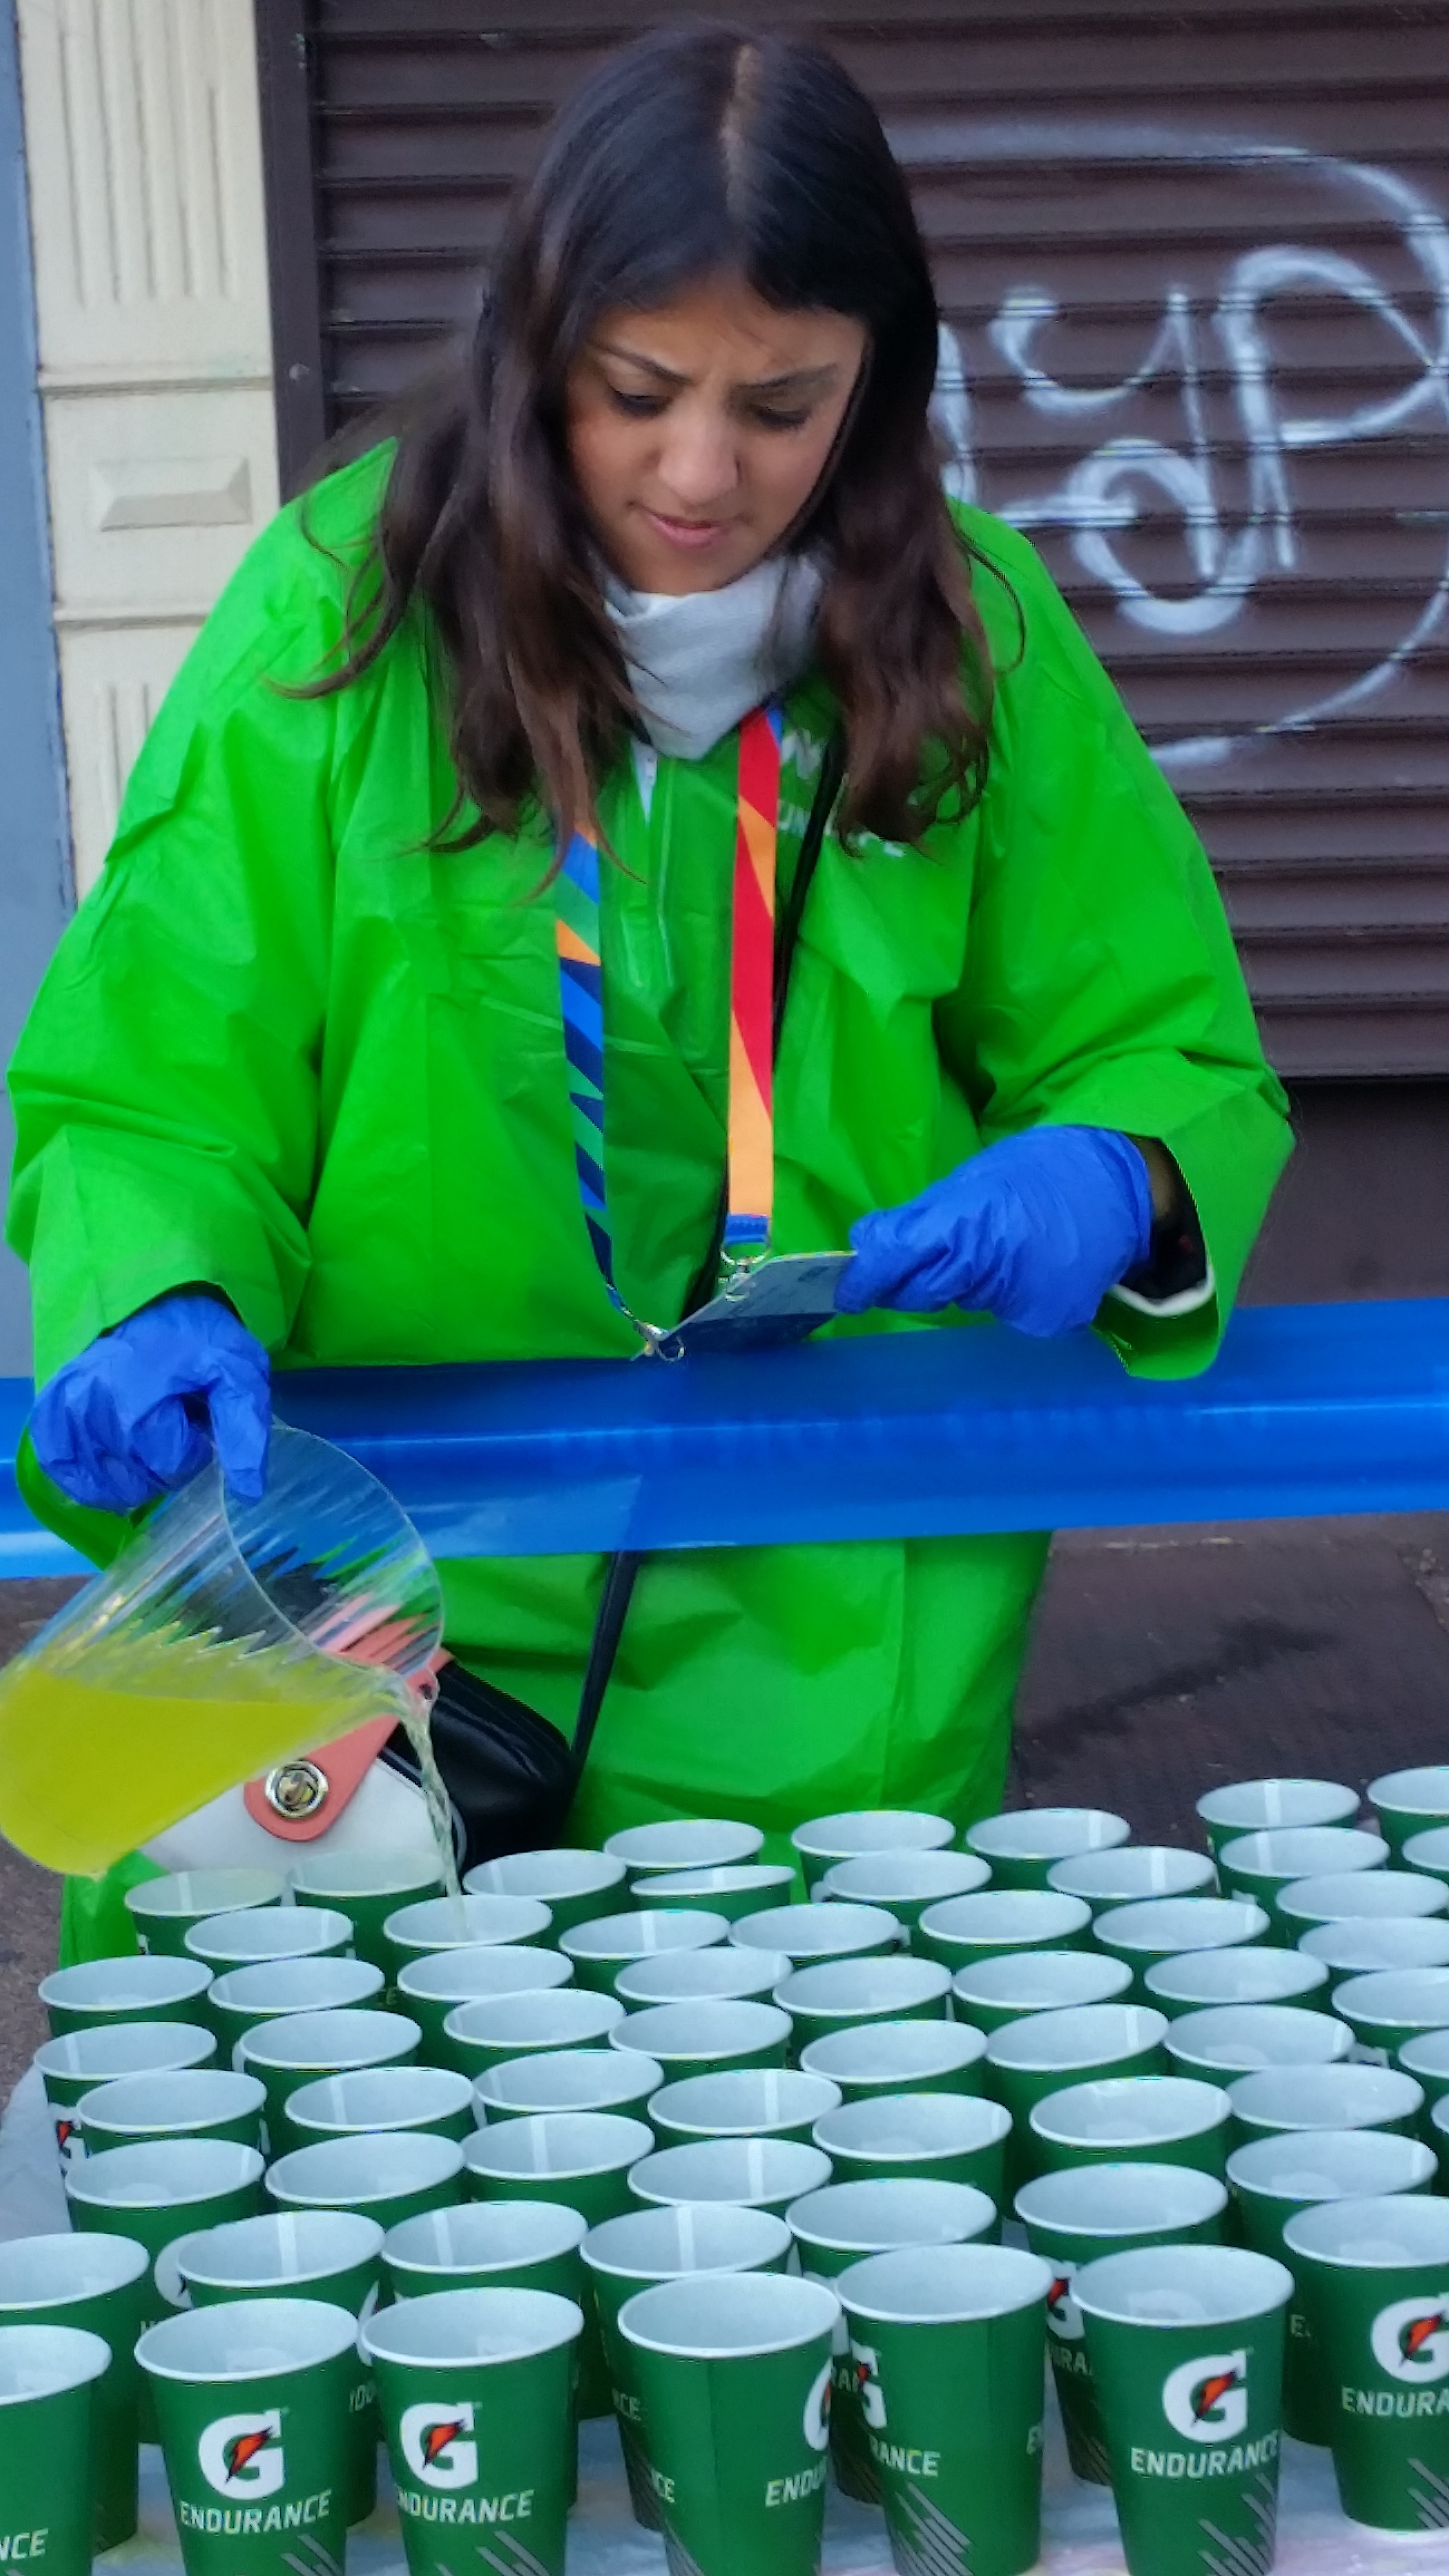 Young woman in green parka pouring yellow sports drink from pitcher into paper cups